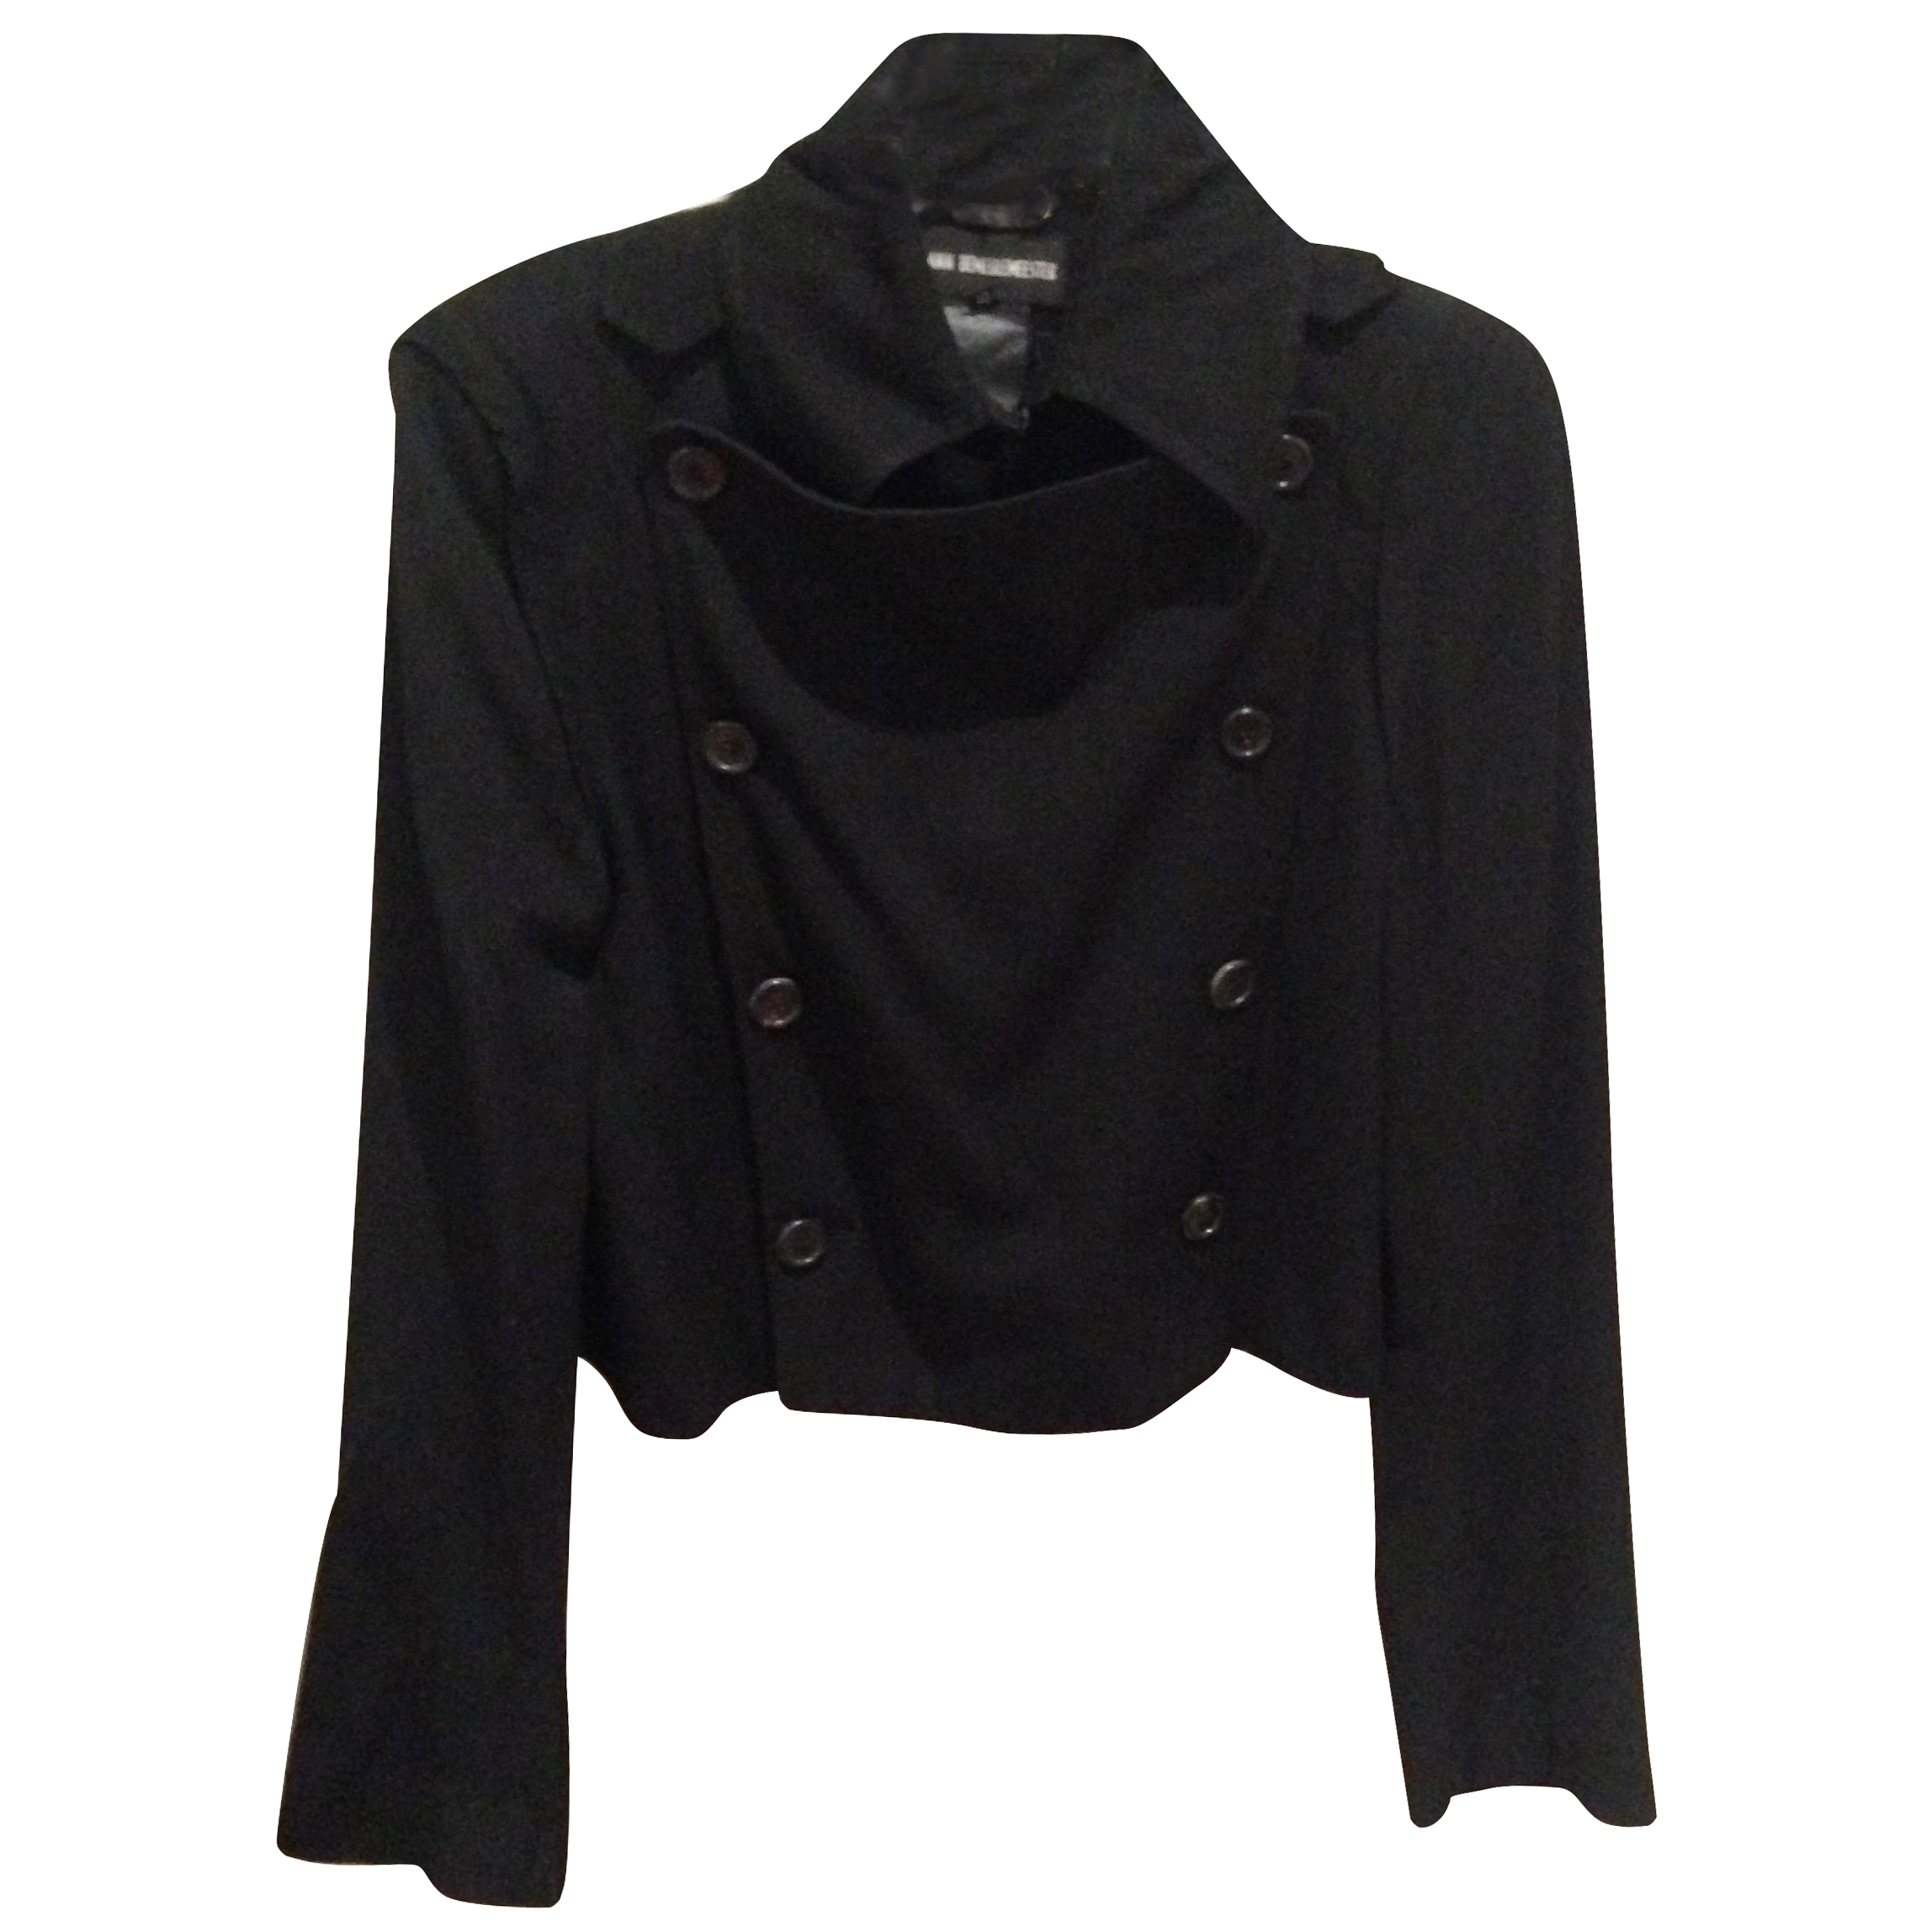 Ann Demeulemeester black cropped military jacket